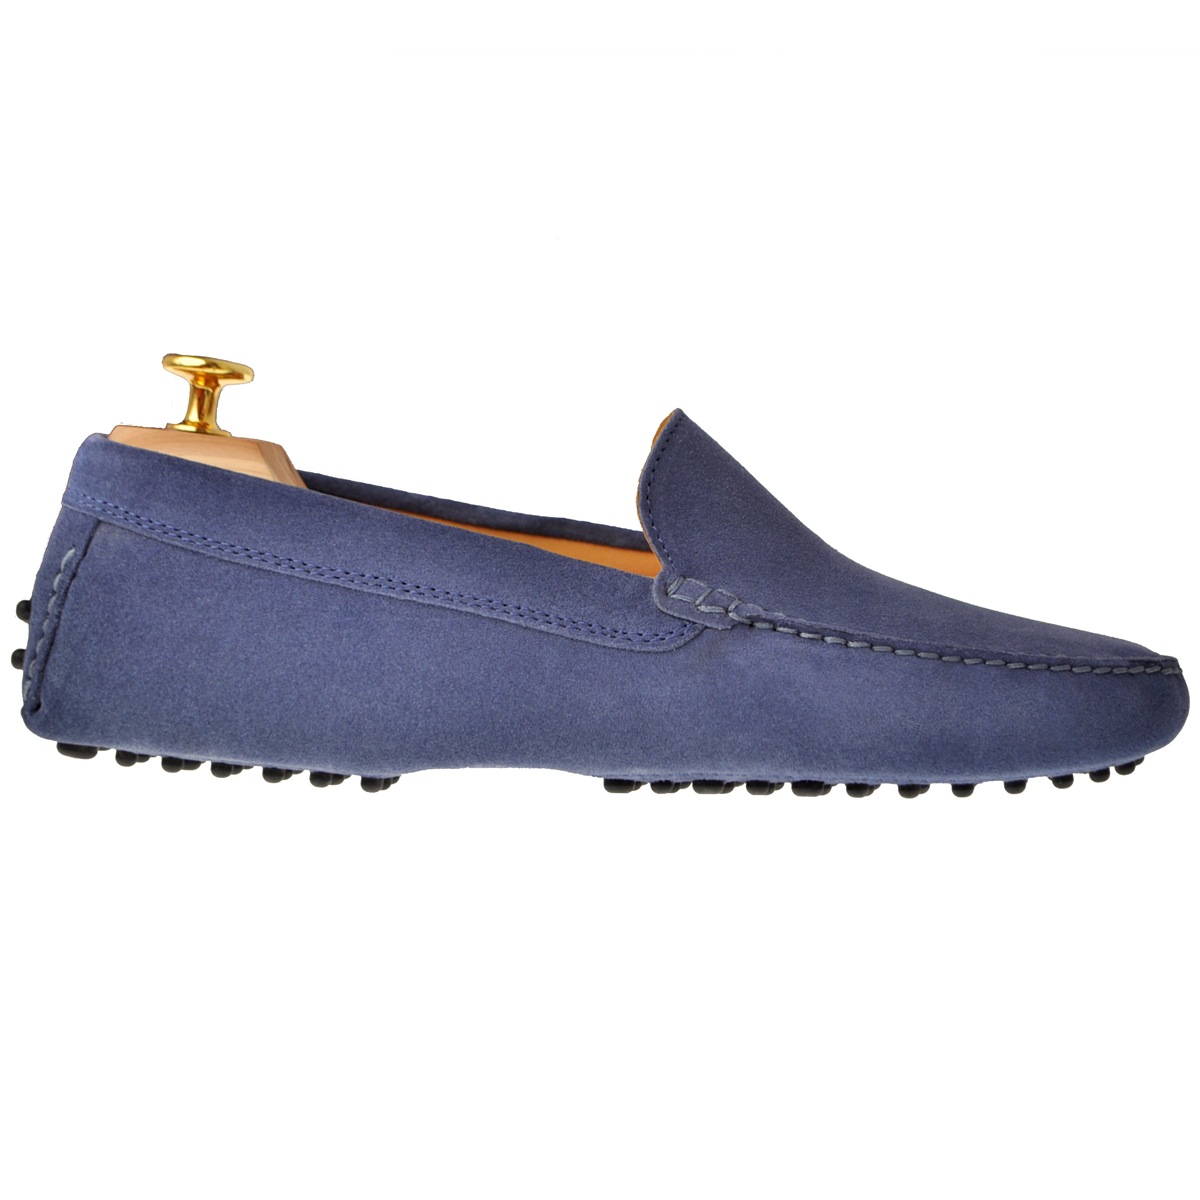 Mano Loafers